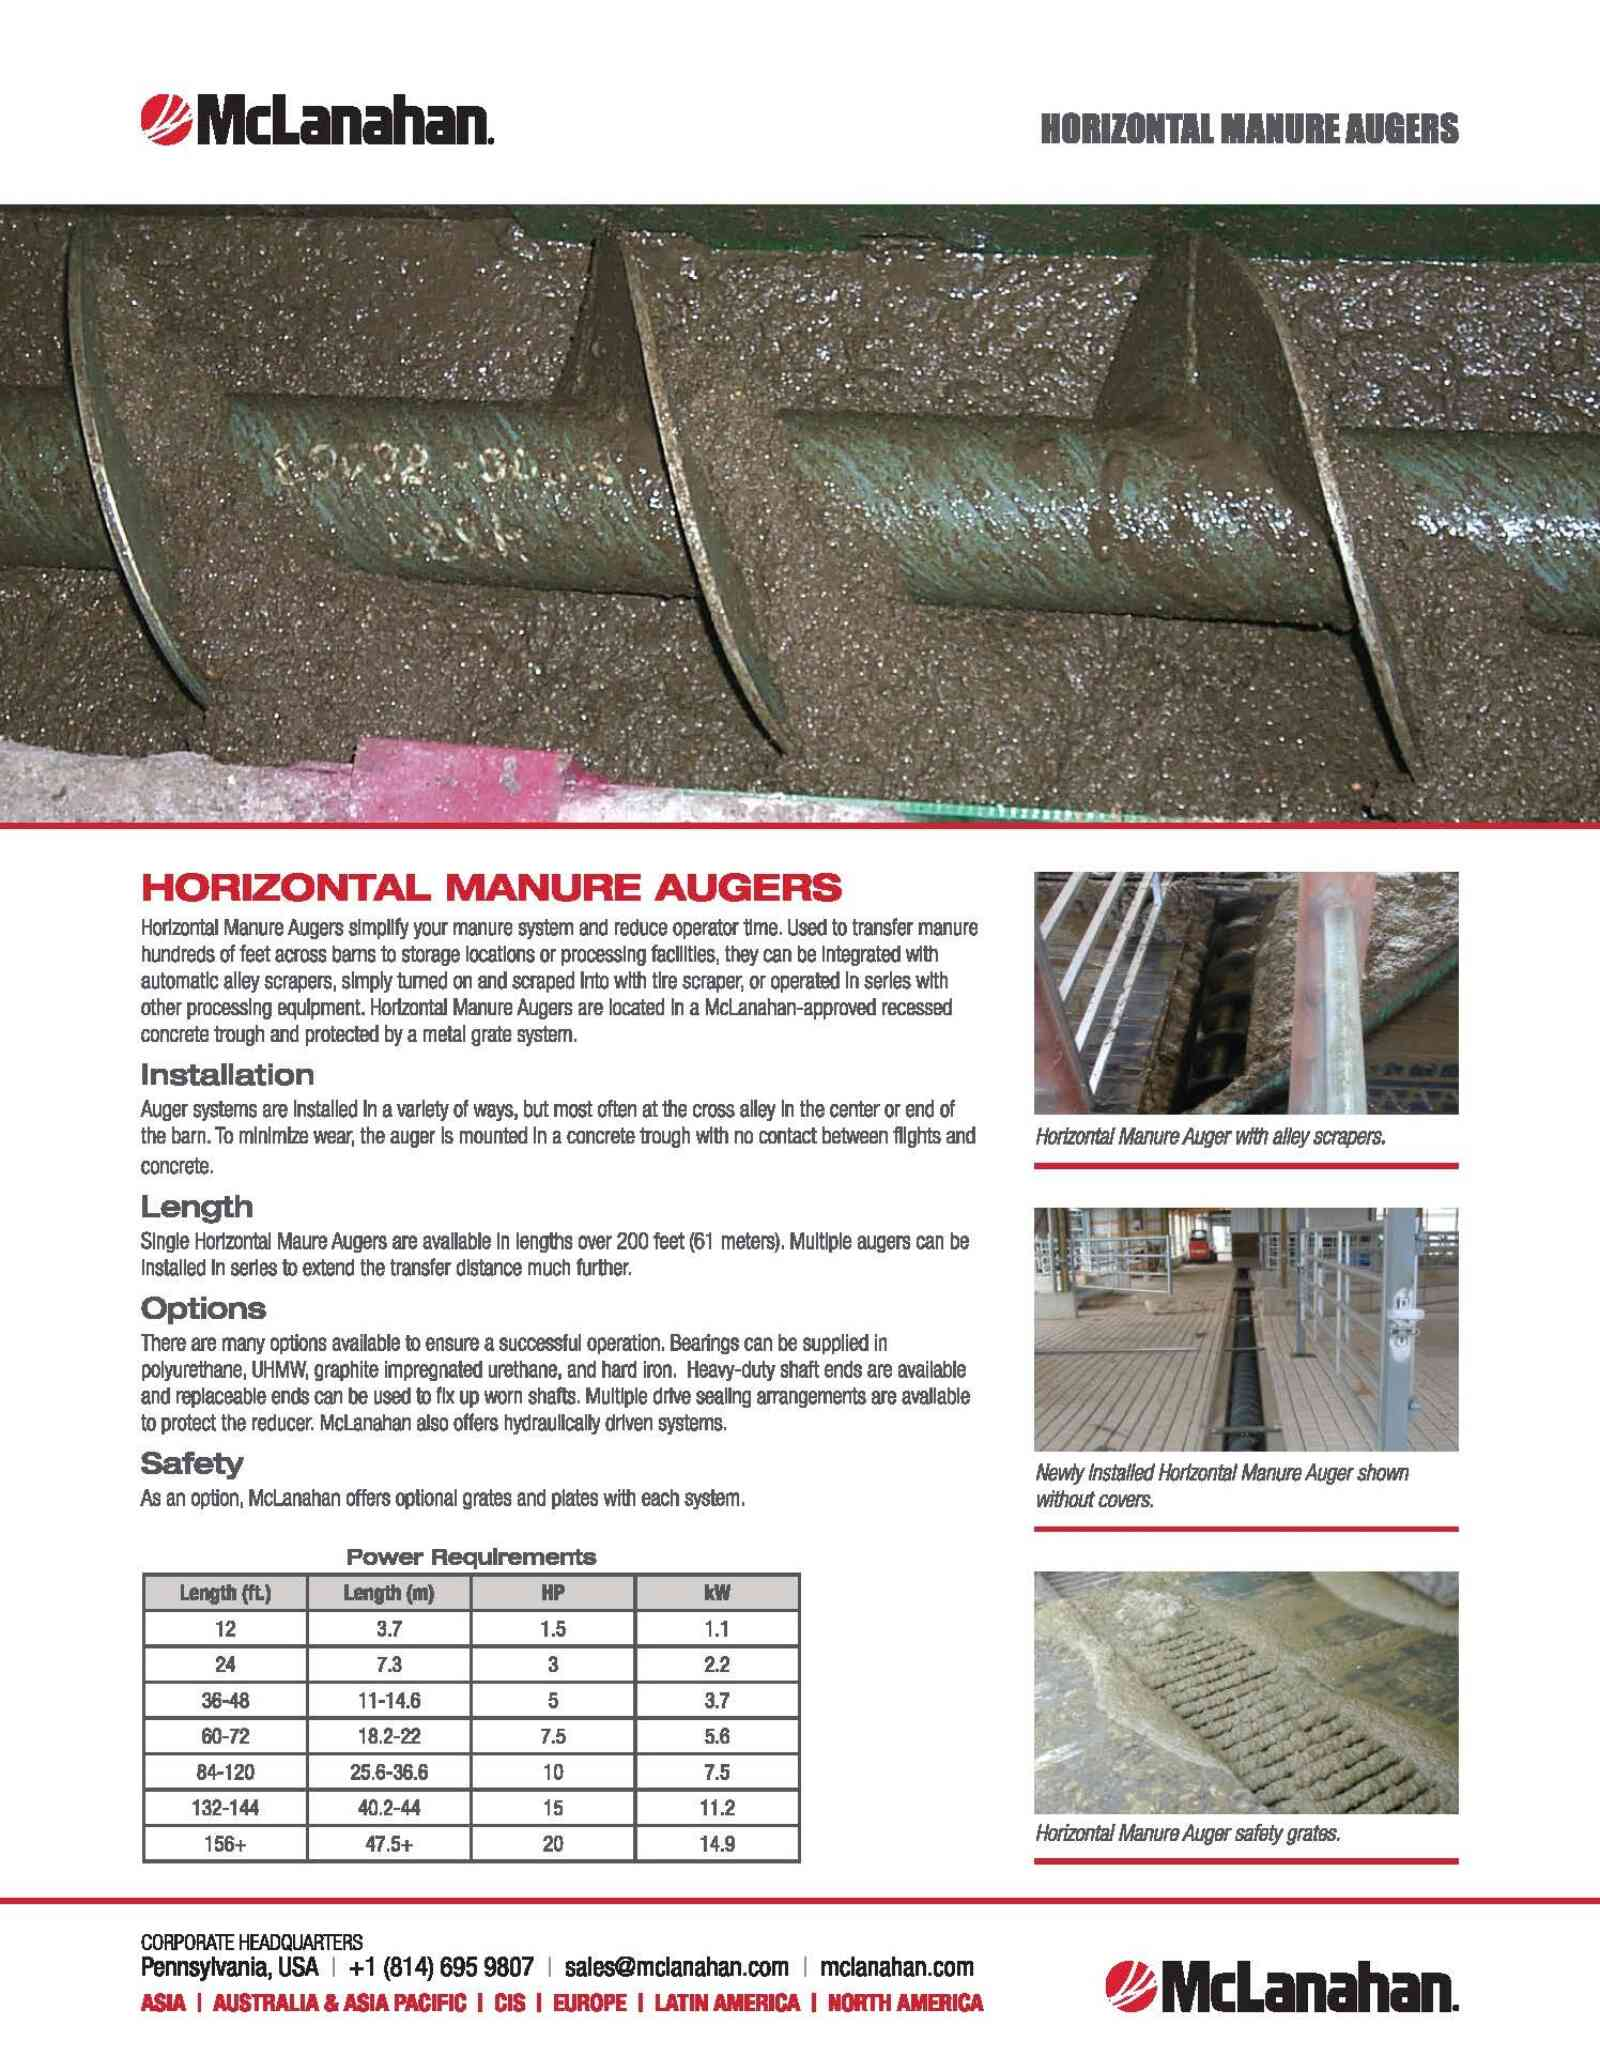 Horizontal Manure Auger Brochure Image Preview